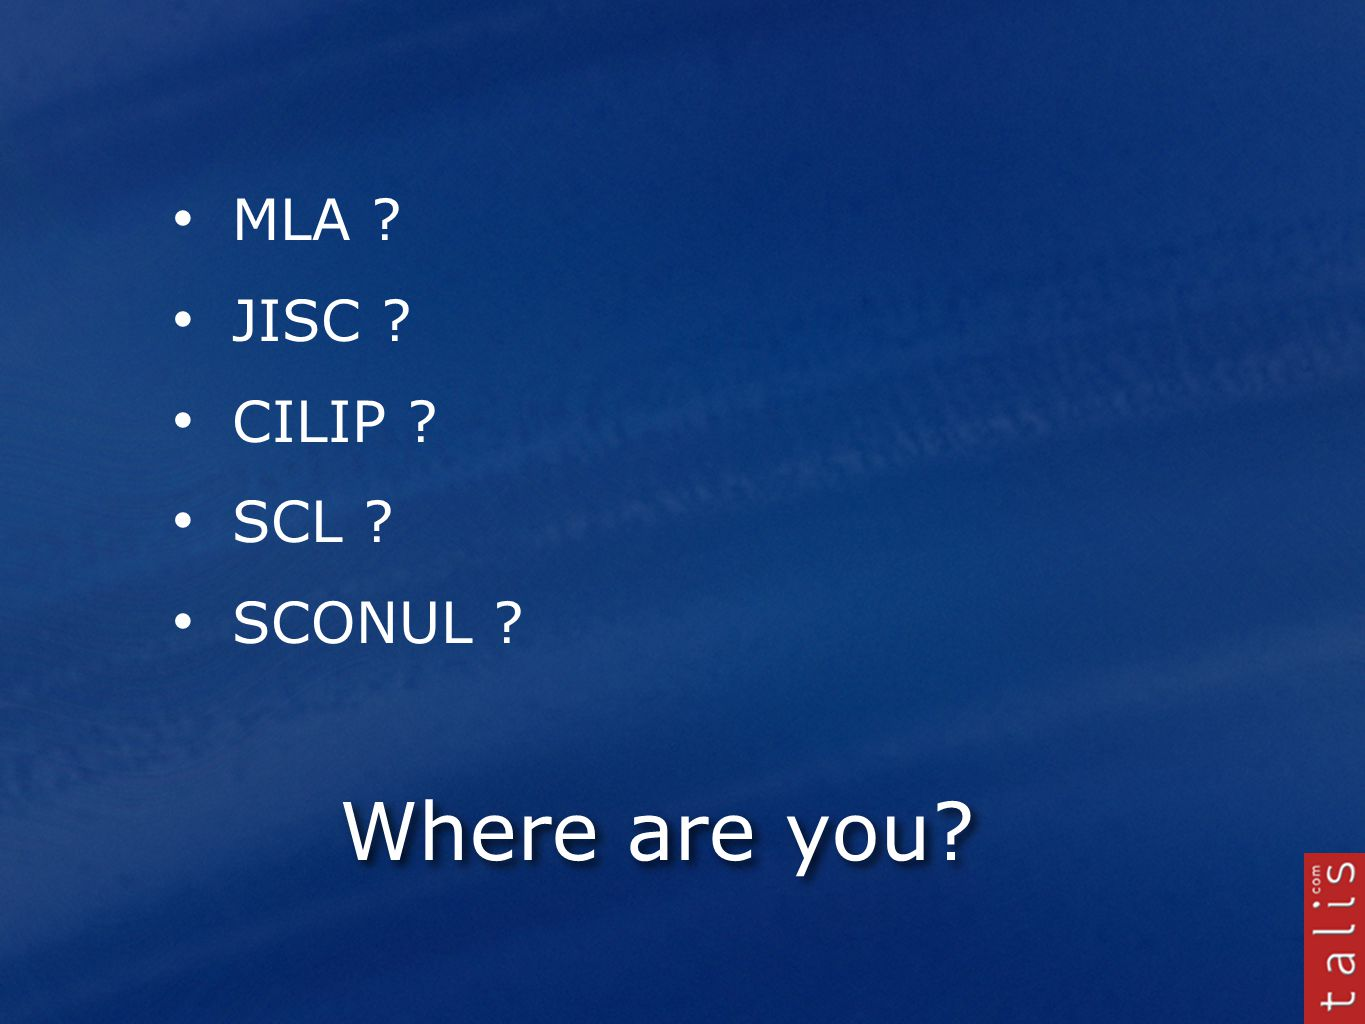 Where are you MLA JISC CILIP SCL SCONUL